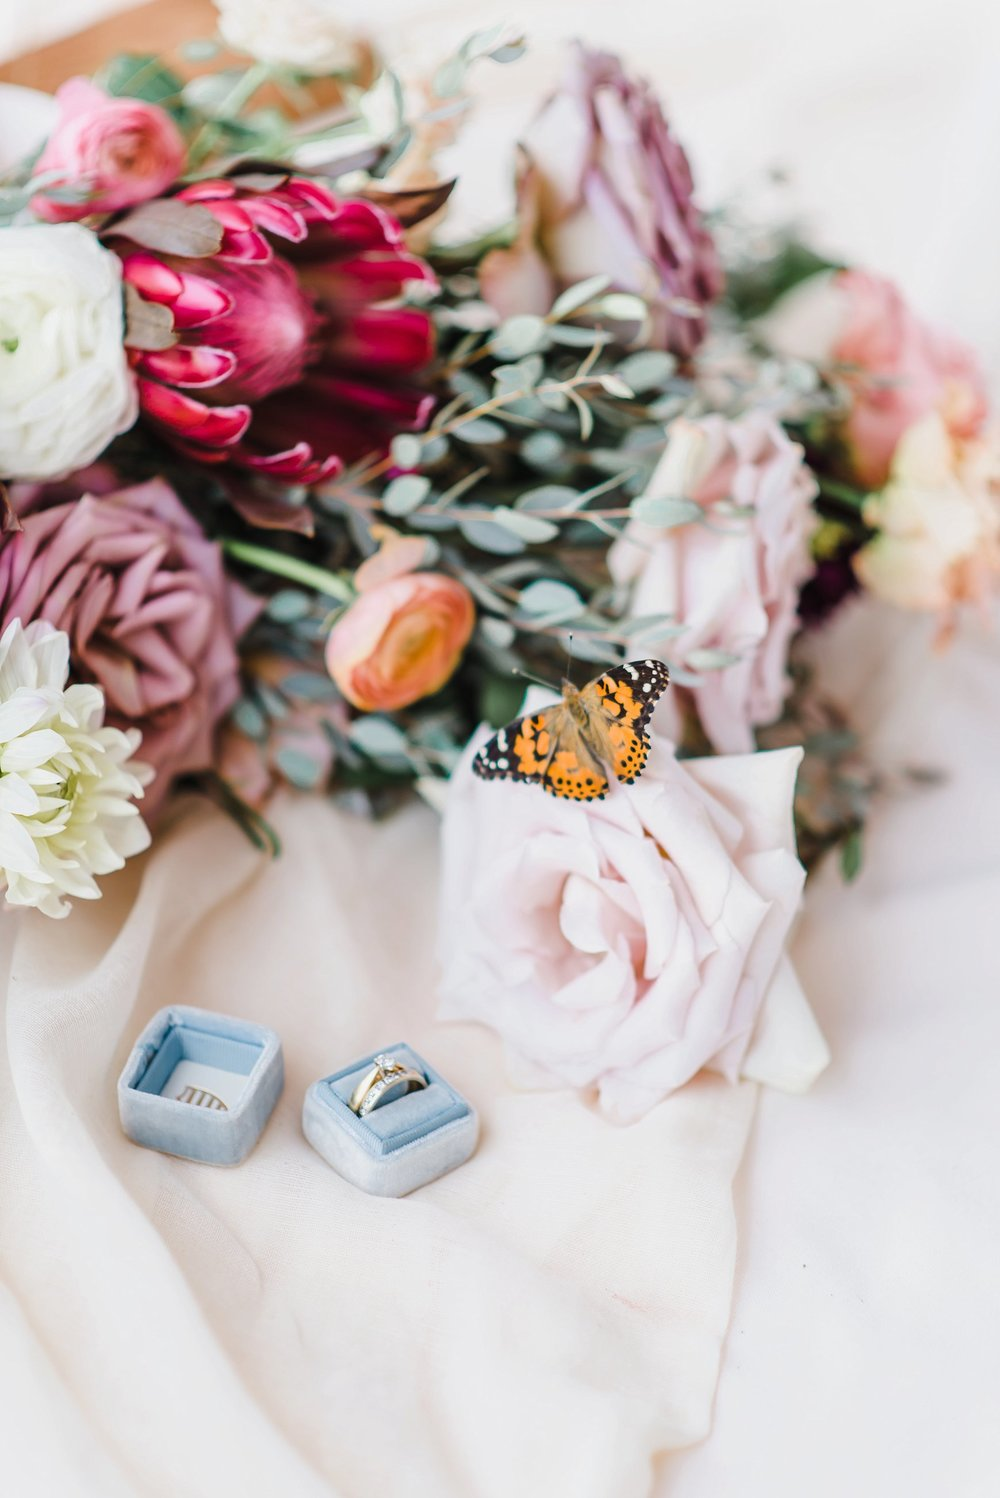 light airy indie fine art ottawa wedding photographer | Ali and Batoul Photography_0346.jpg